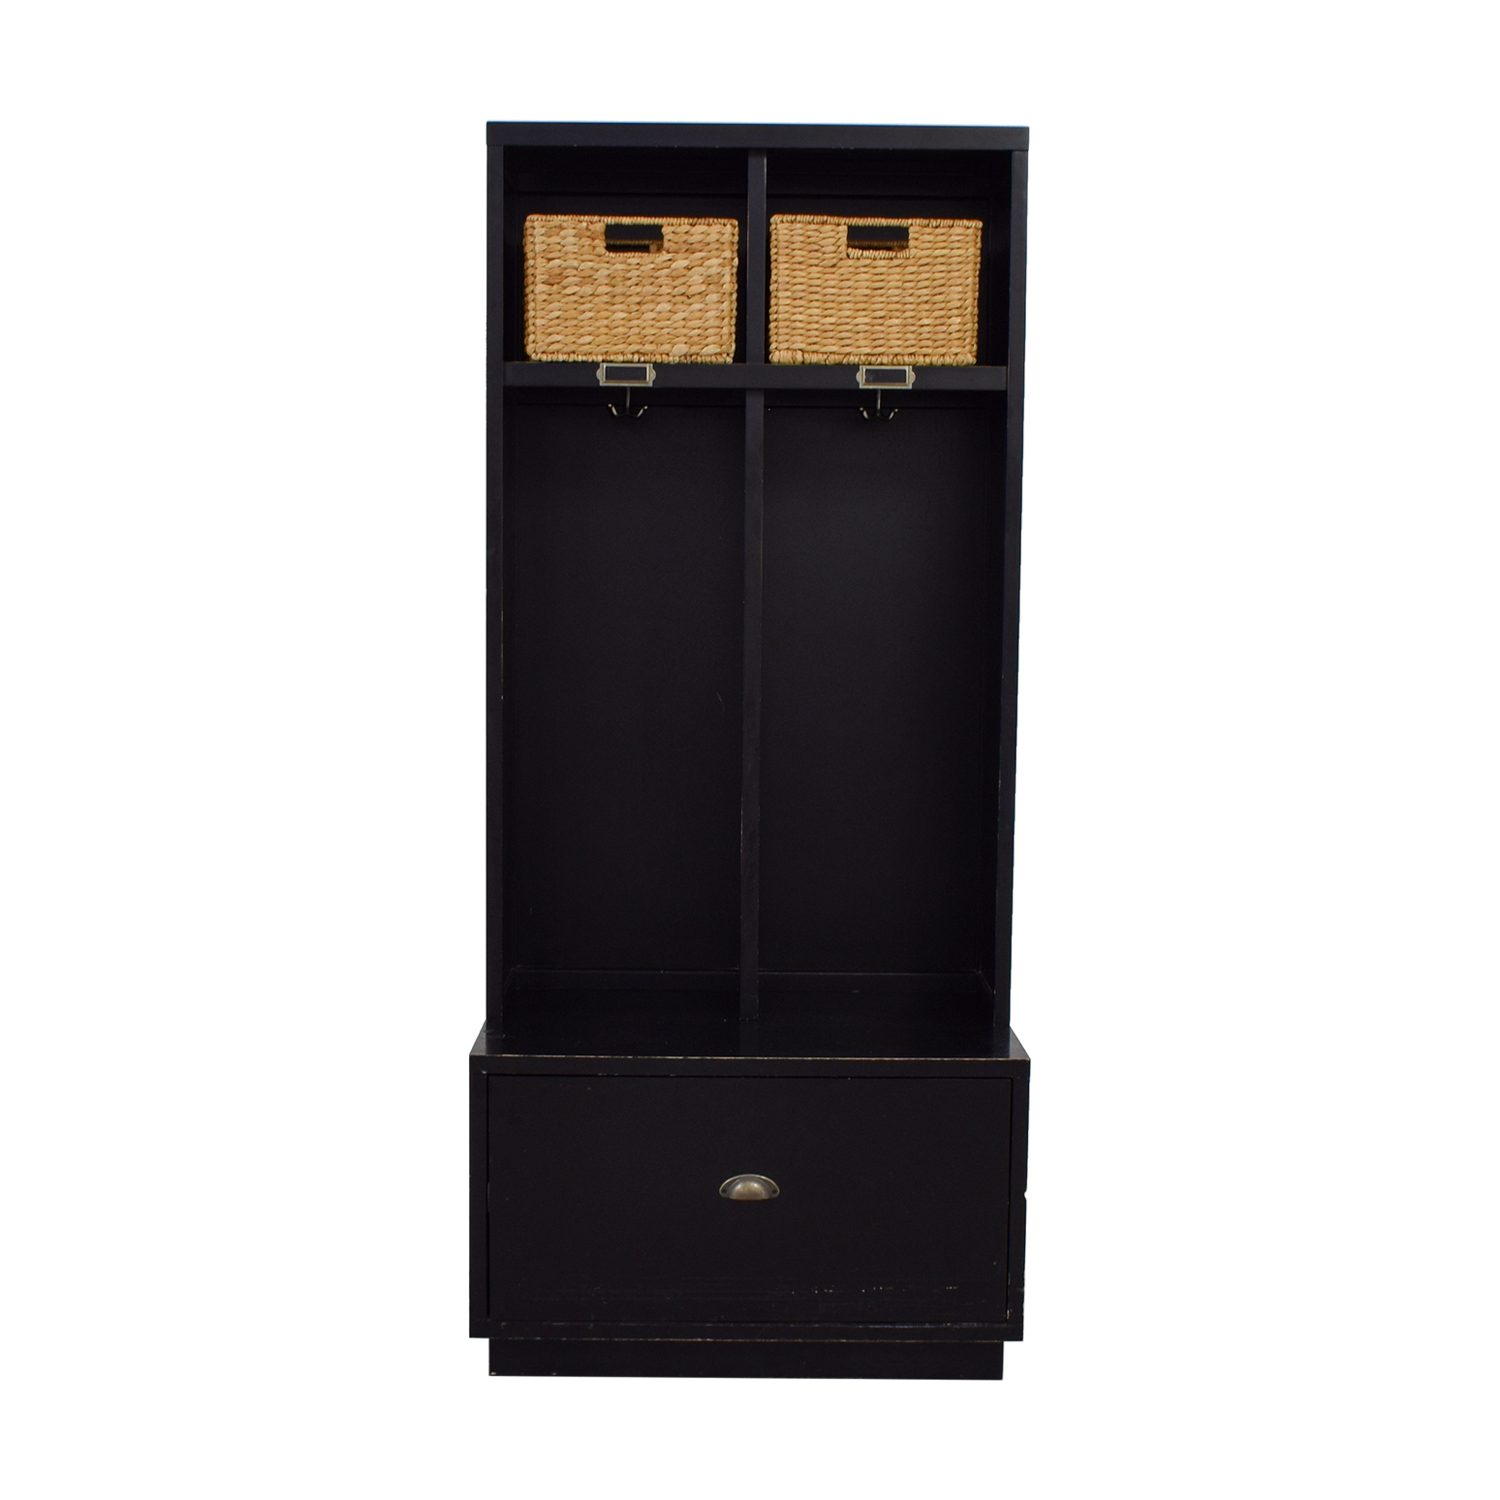 Pottery Barn Pottery Barn Single Drawer Mud Room Lockers with Wicker Baskets Dressers